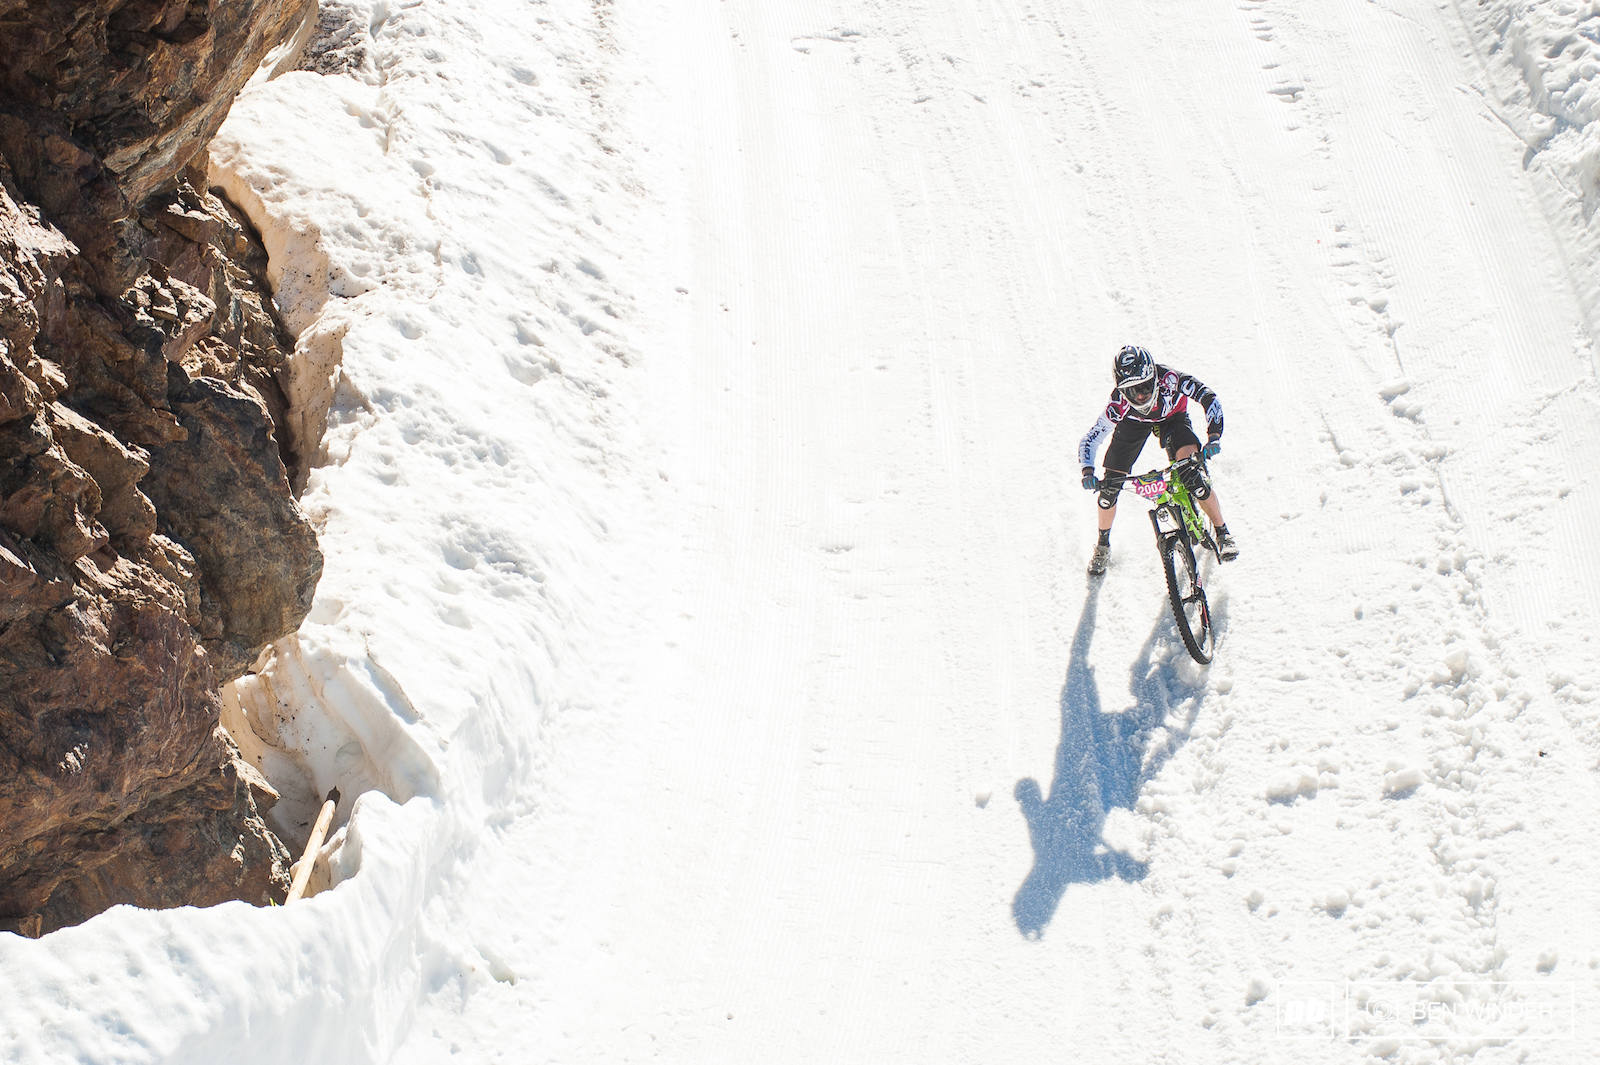 Winner Pauline took it steady on the top glacier who was in 4th after the first corner. She managed to overtake the three other competitors and took the win.